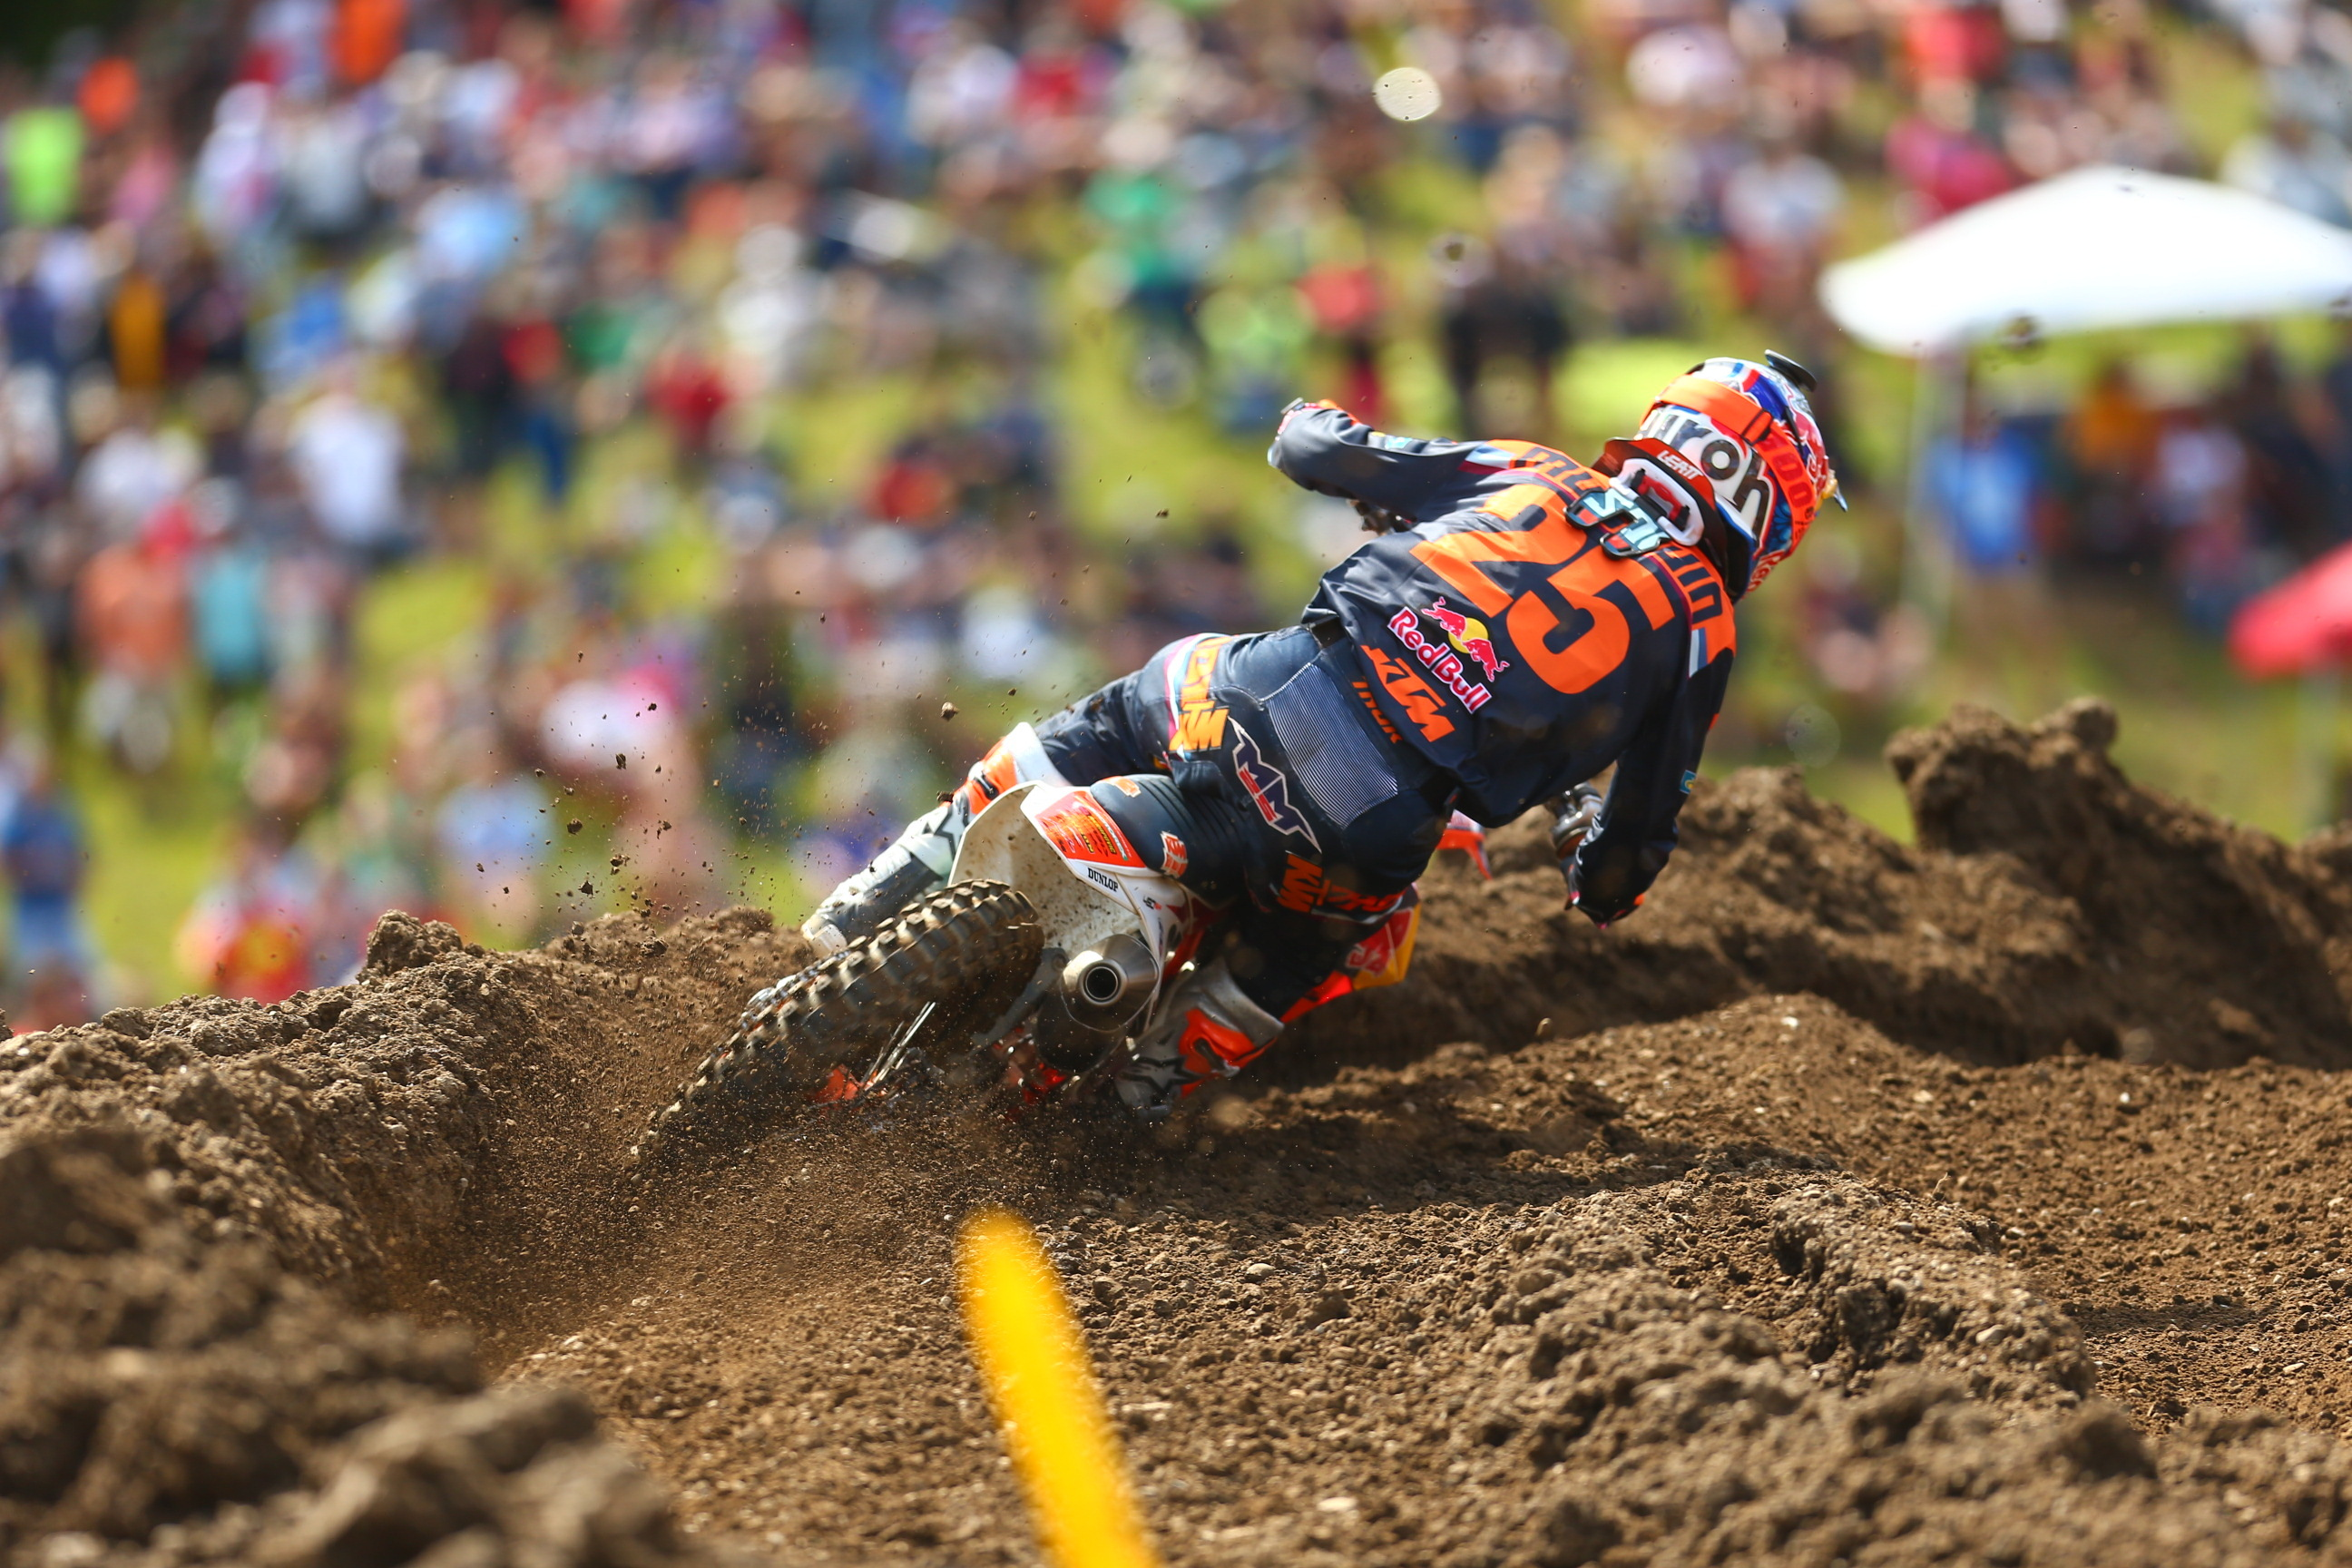 Musquin was in the hunt early and finished second best in class